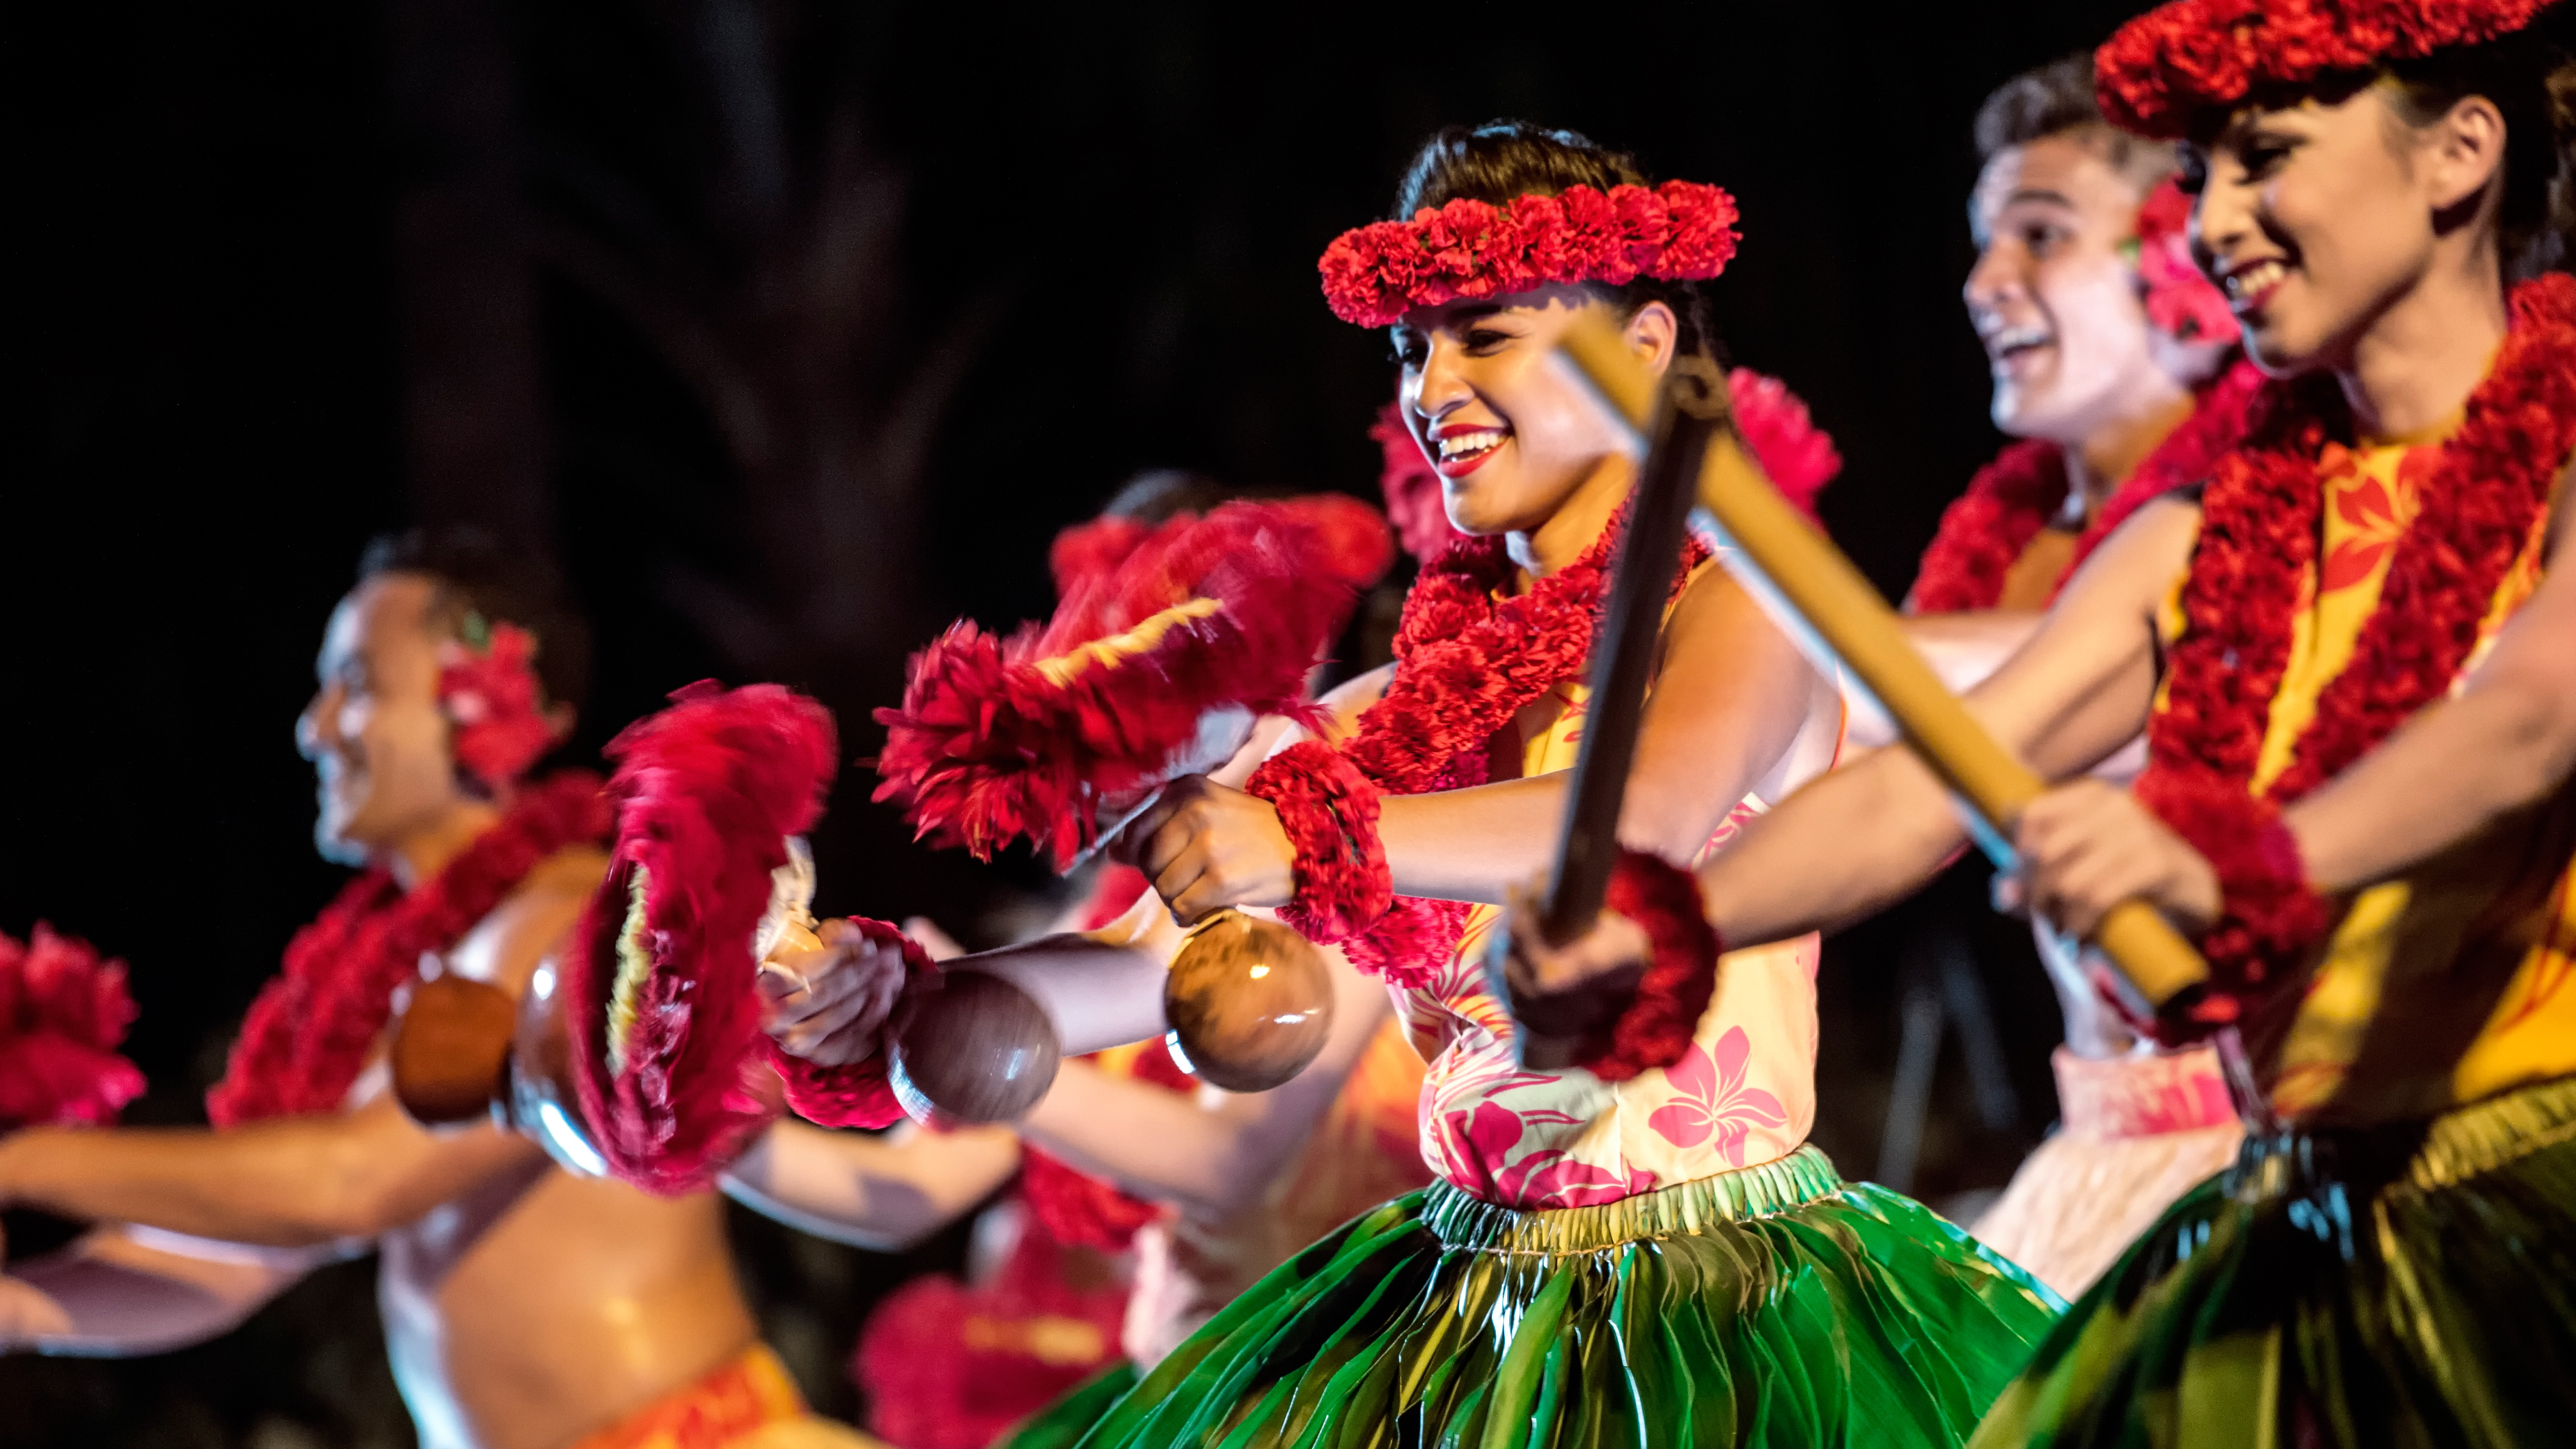 At the Ka Wa'a luau, 2 female performers wearing hula dresses and floral headbands beat out rhythm on sticks